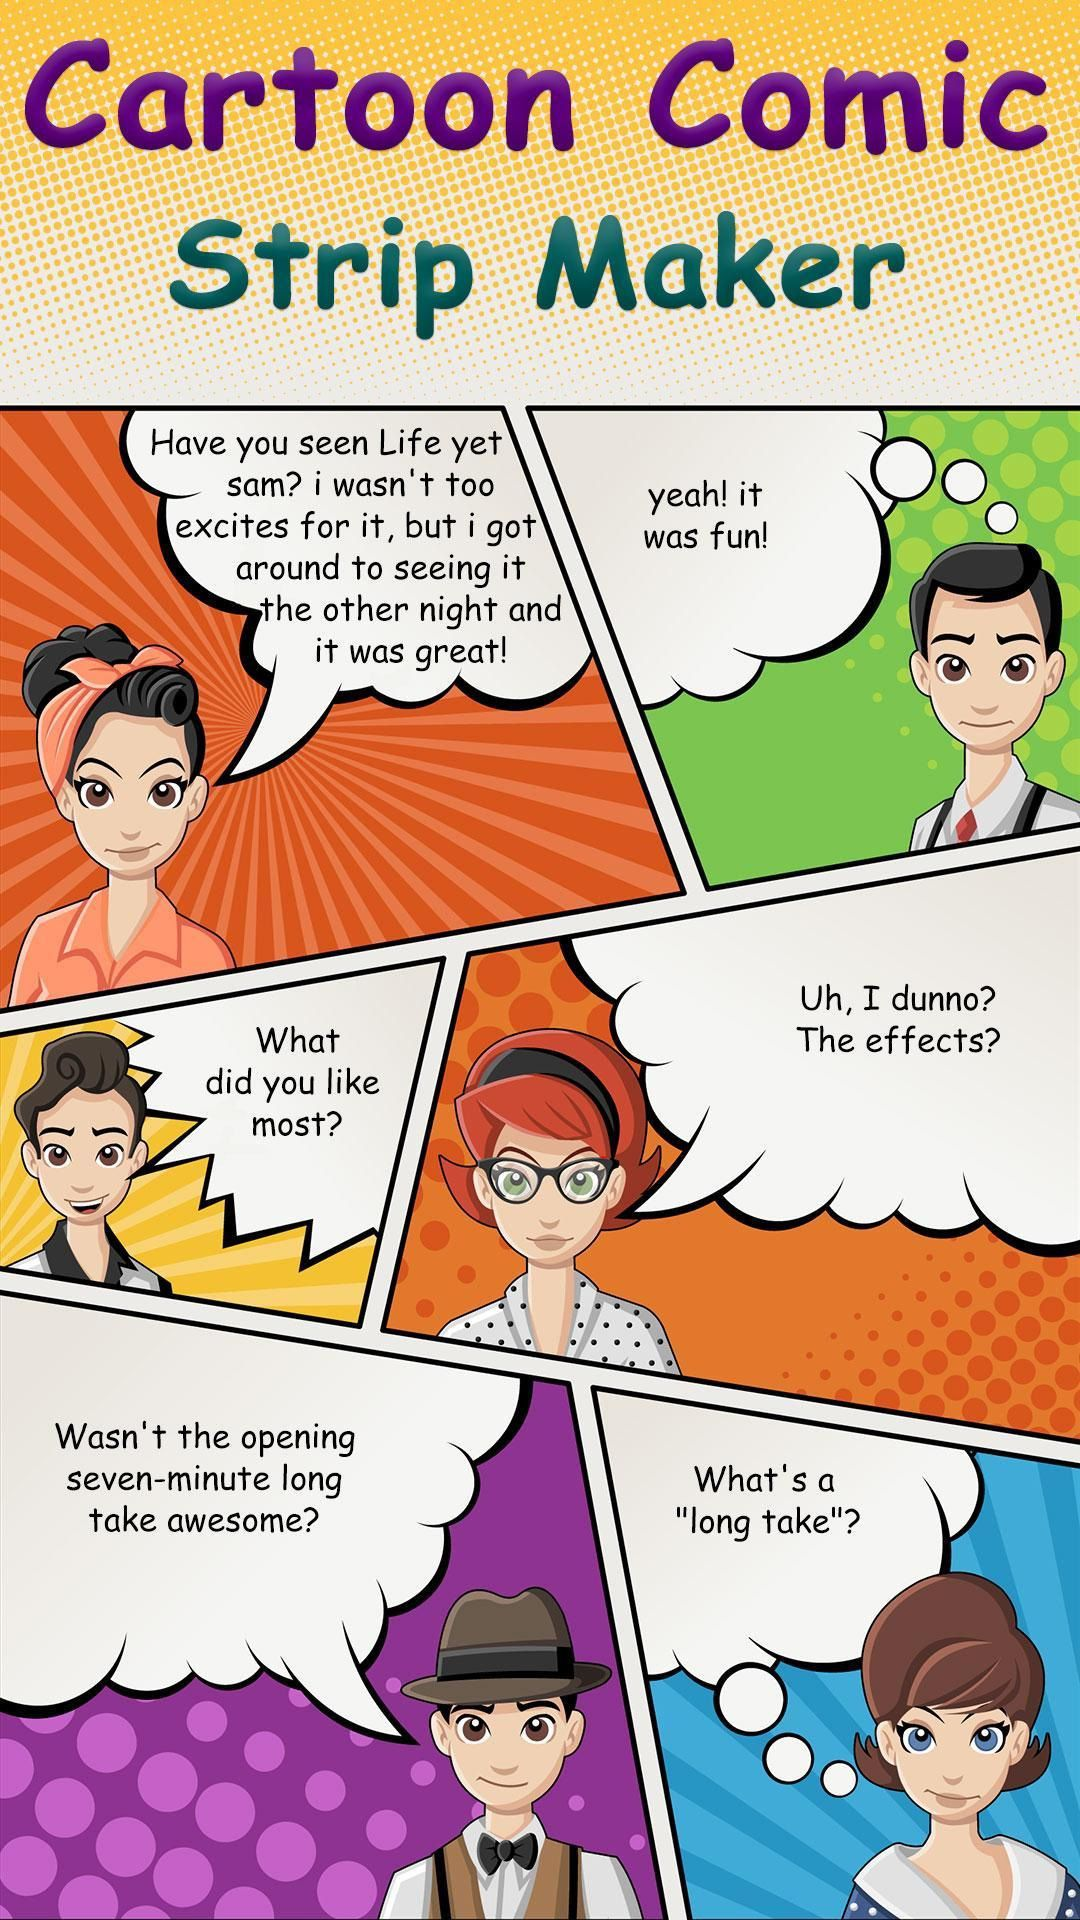 007 Phenomenal Comic Strip Microsoft Word High Definition  Making A With In TemplateFull